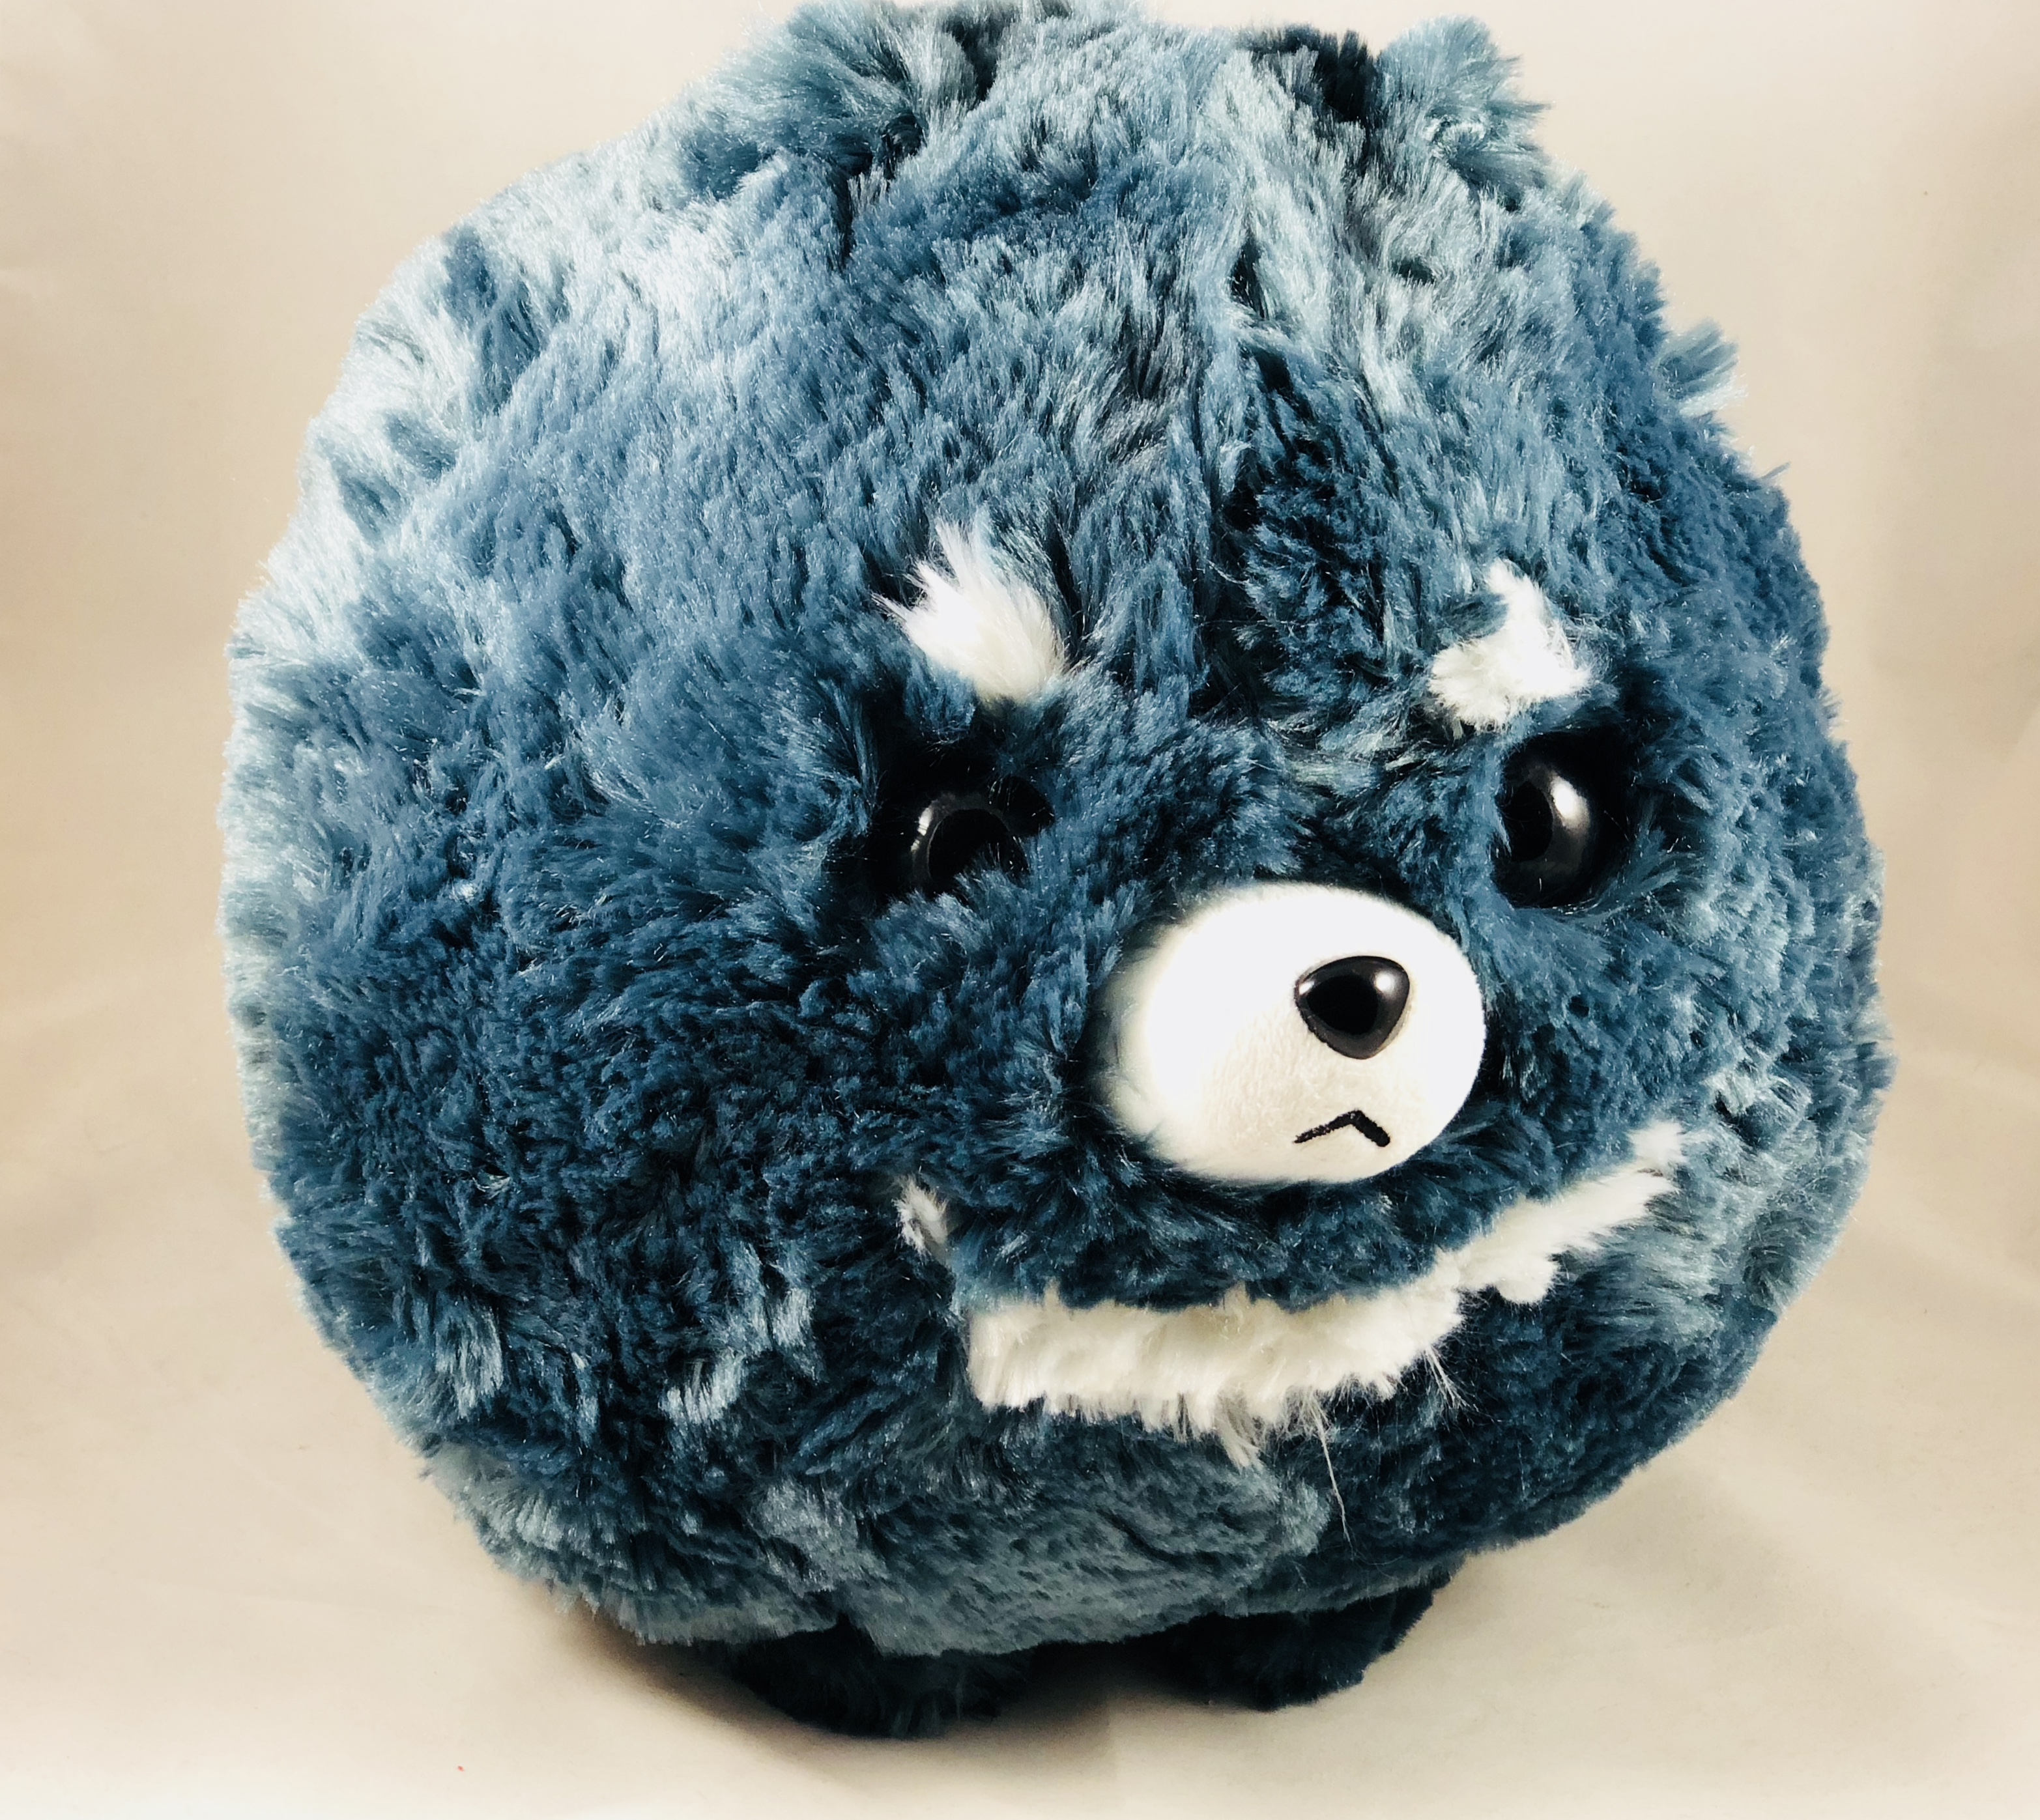 Hay Hay Chicken Stuffed Animal, Pometan Amuse Super Big Fluffy Plush Sold By The Crystal Crow On Storenvy